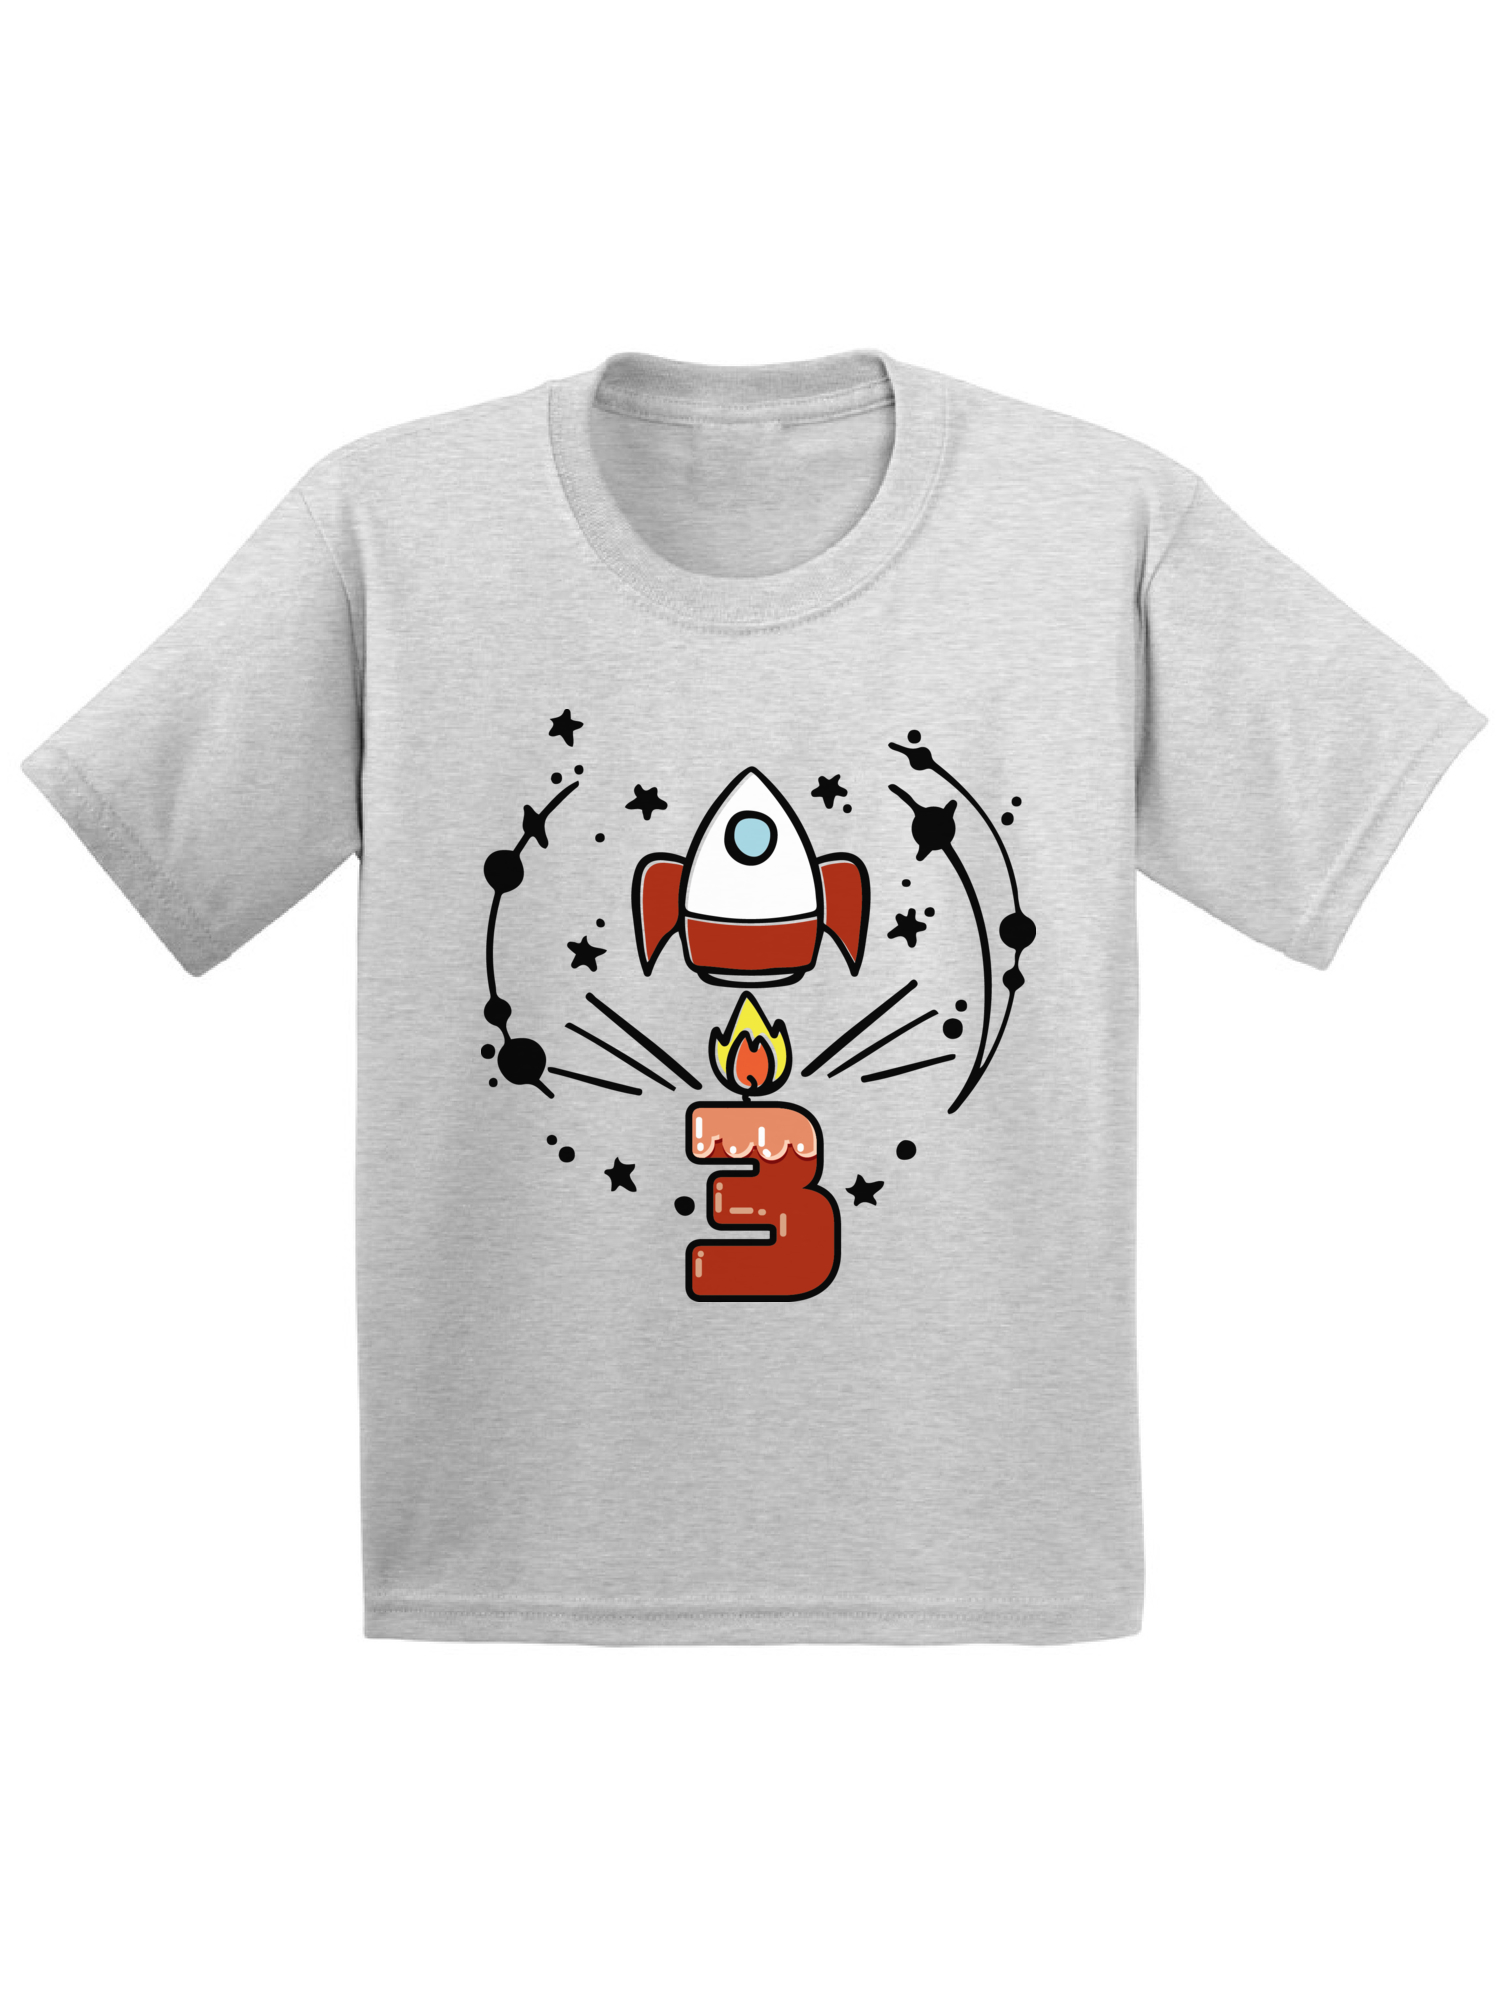 Awkward Styles Birthday Gift For 3 Years Old Kids Toddler Rocket Space Shirts 3rd Party Themed